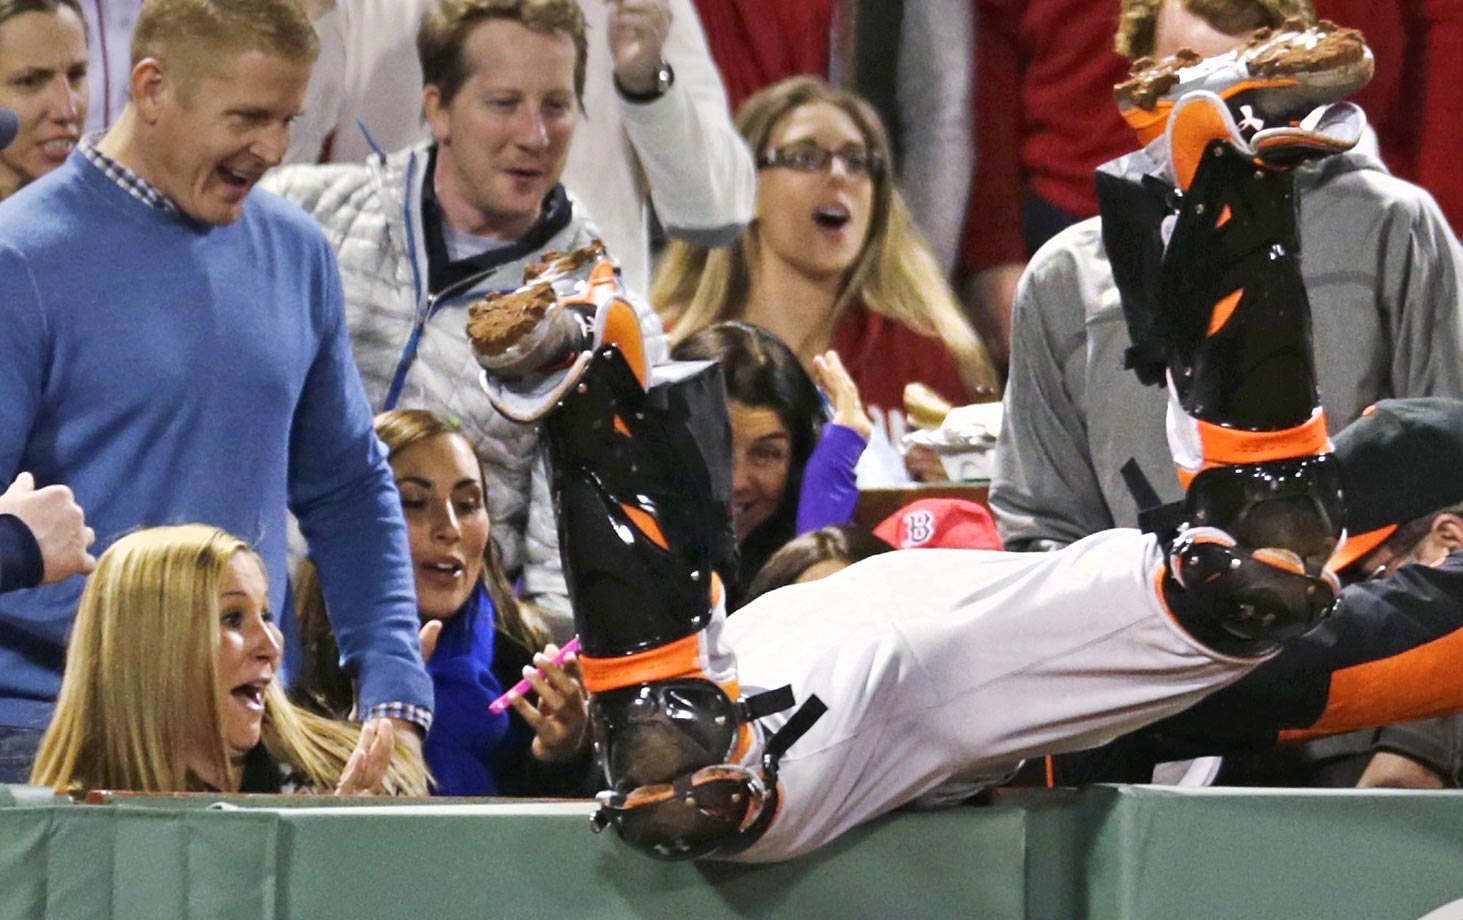 Baltimore Orioles catcher Caleb Joseph dives into the stands but cannot make the play on a foul ball hit by David Ortiz.